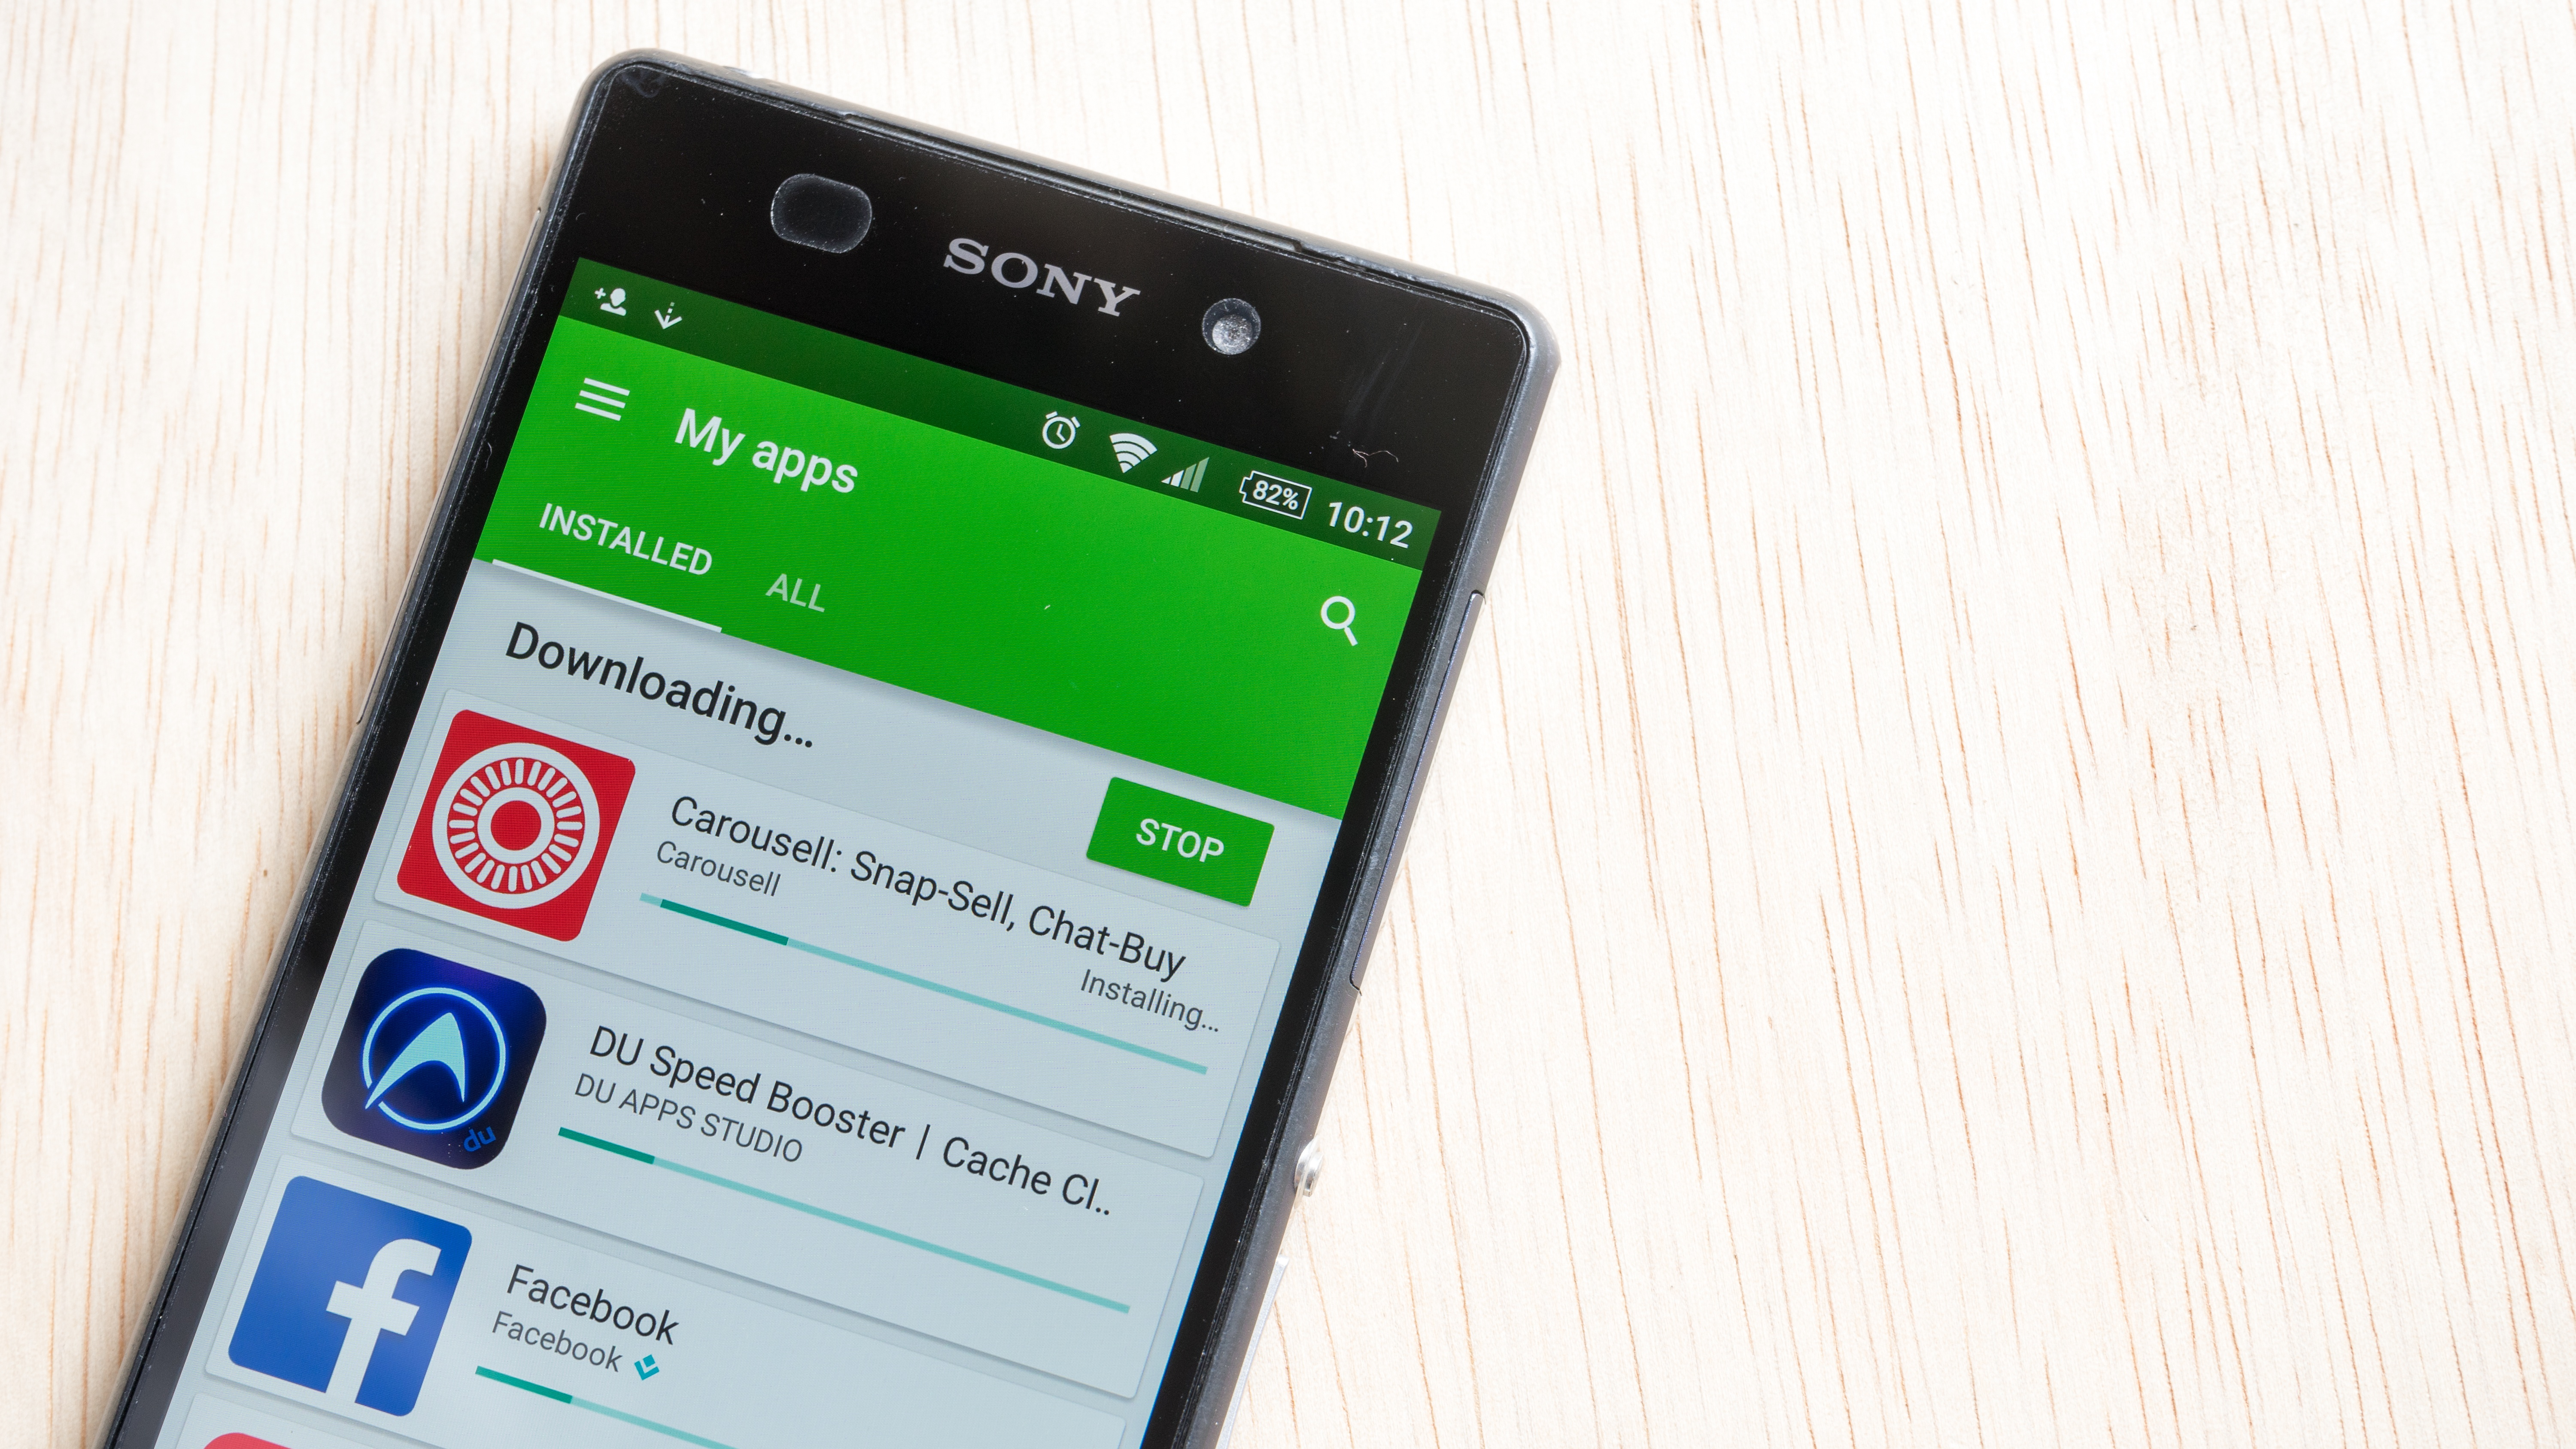 Google Play store updating apps